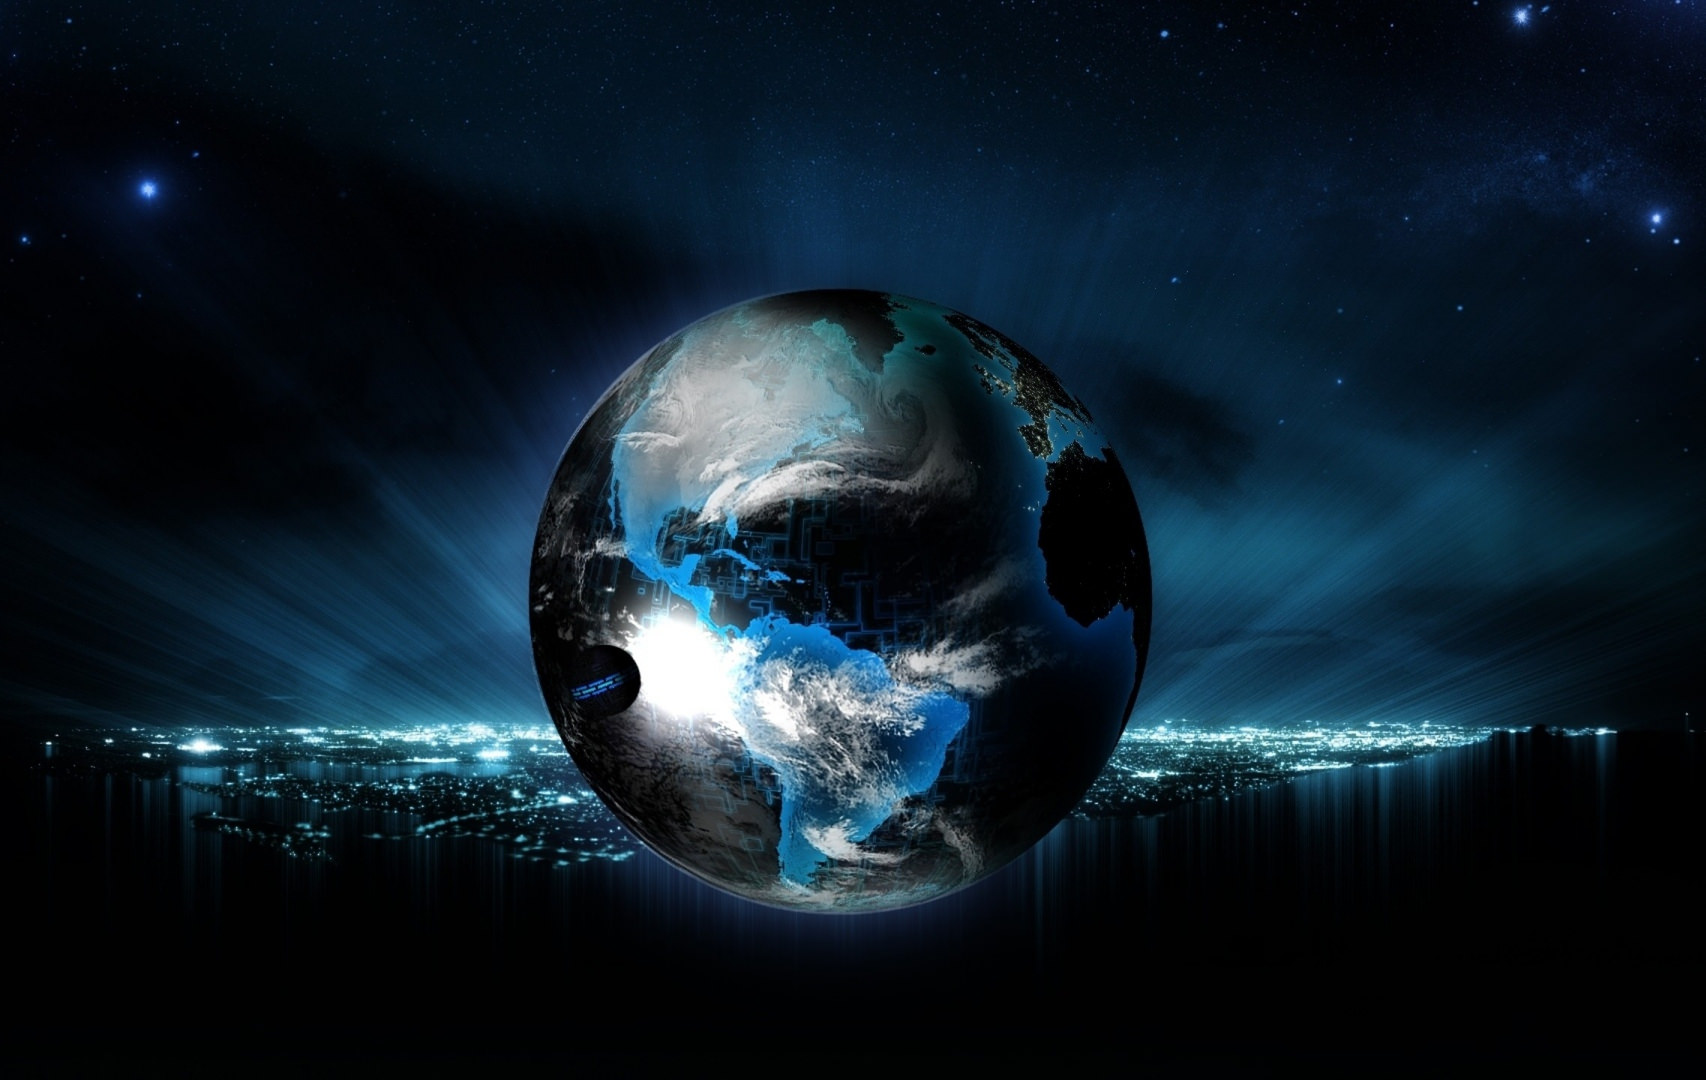 Amazing Globe in Blue & Black Background